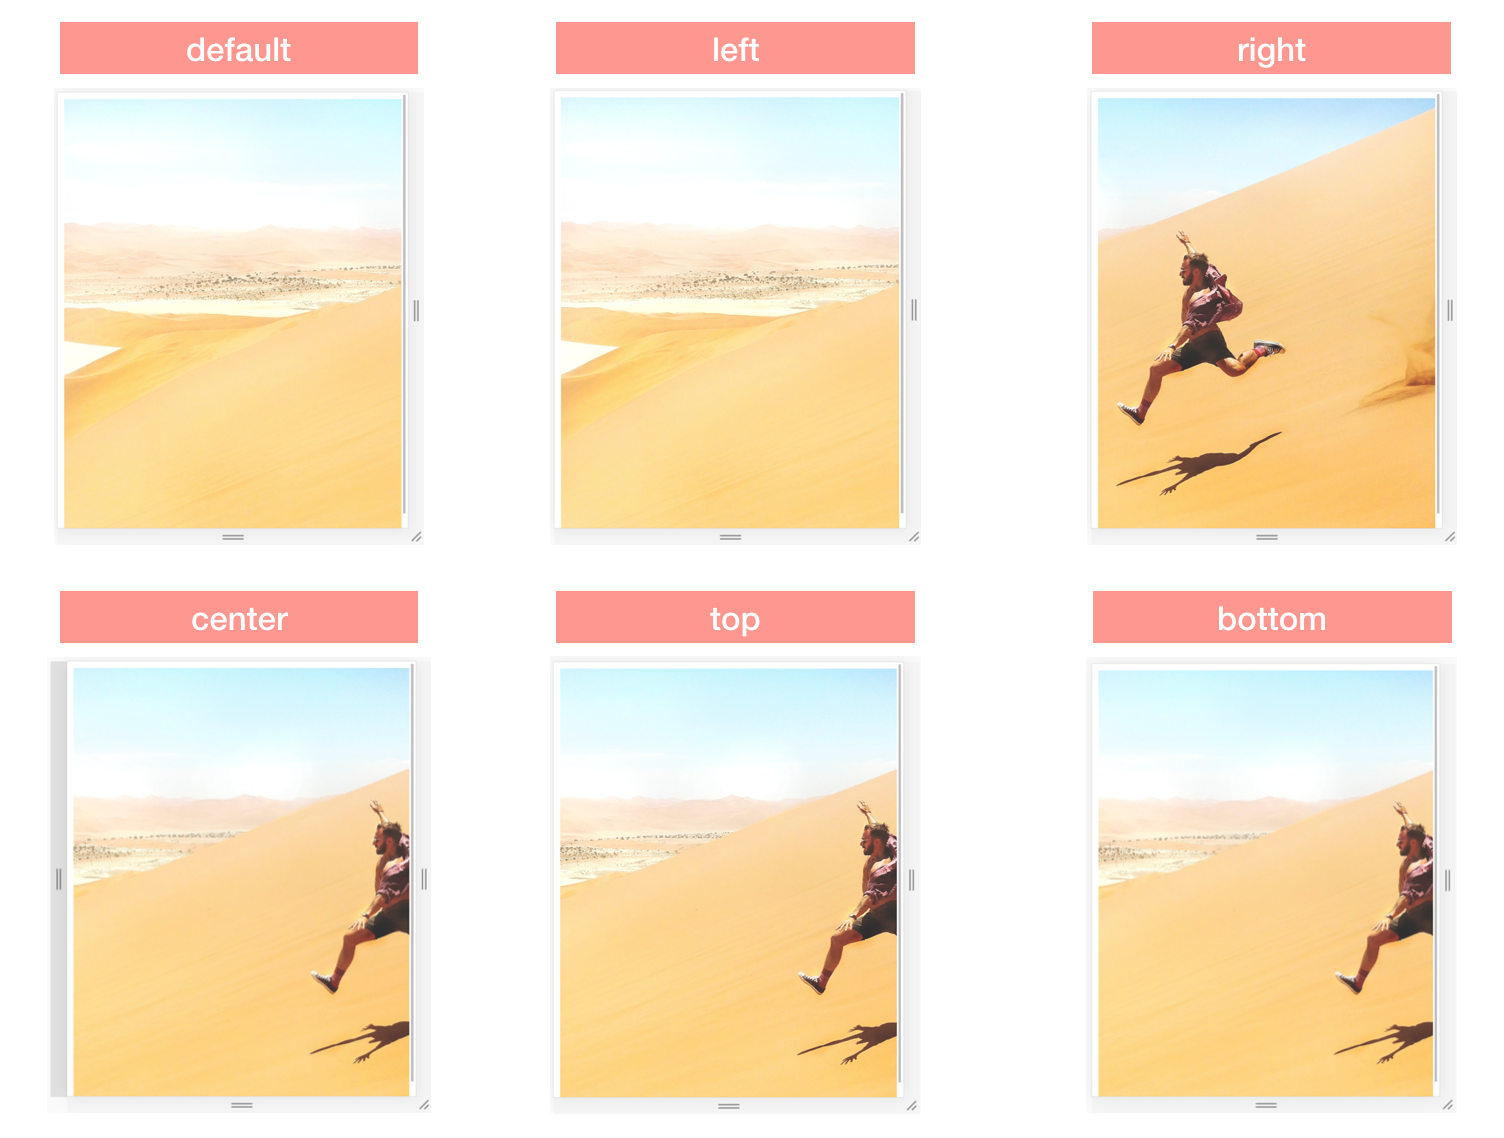 How To Position Background Images With Css By Aliceyt Better Programming Medium